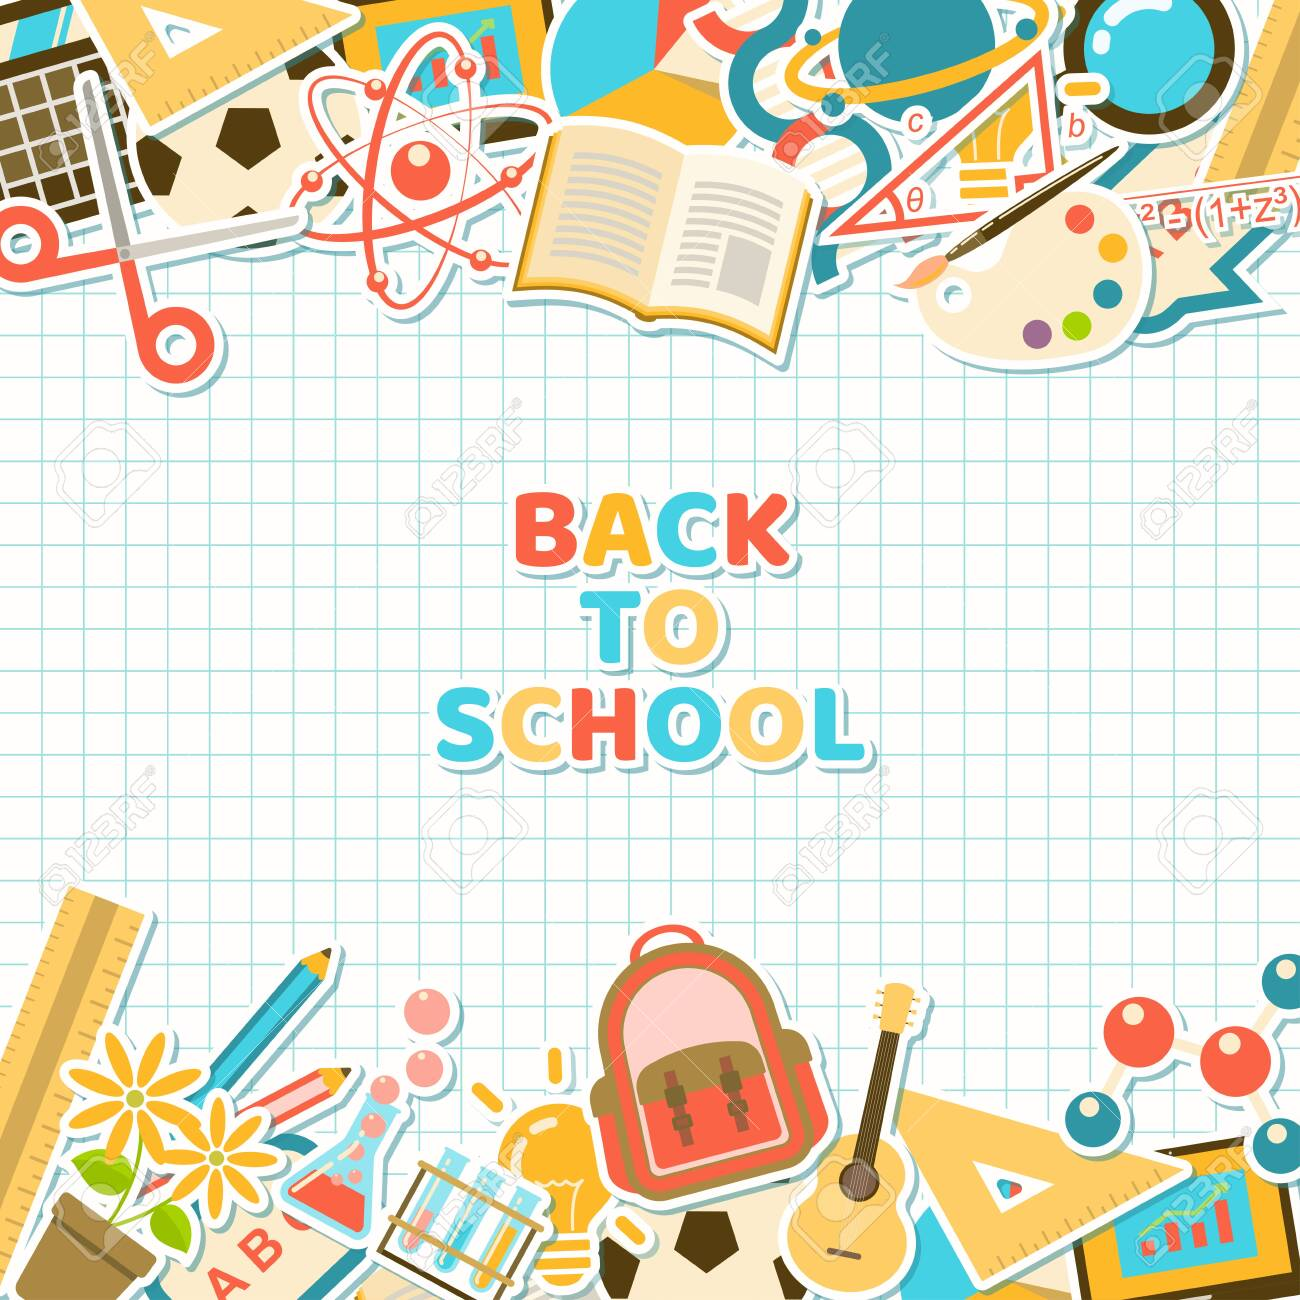 Back to school background with colorful course and school element